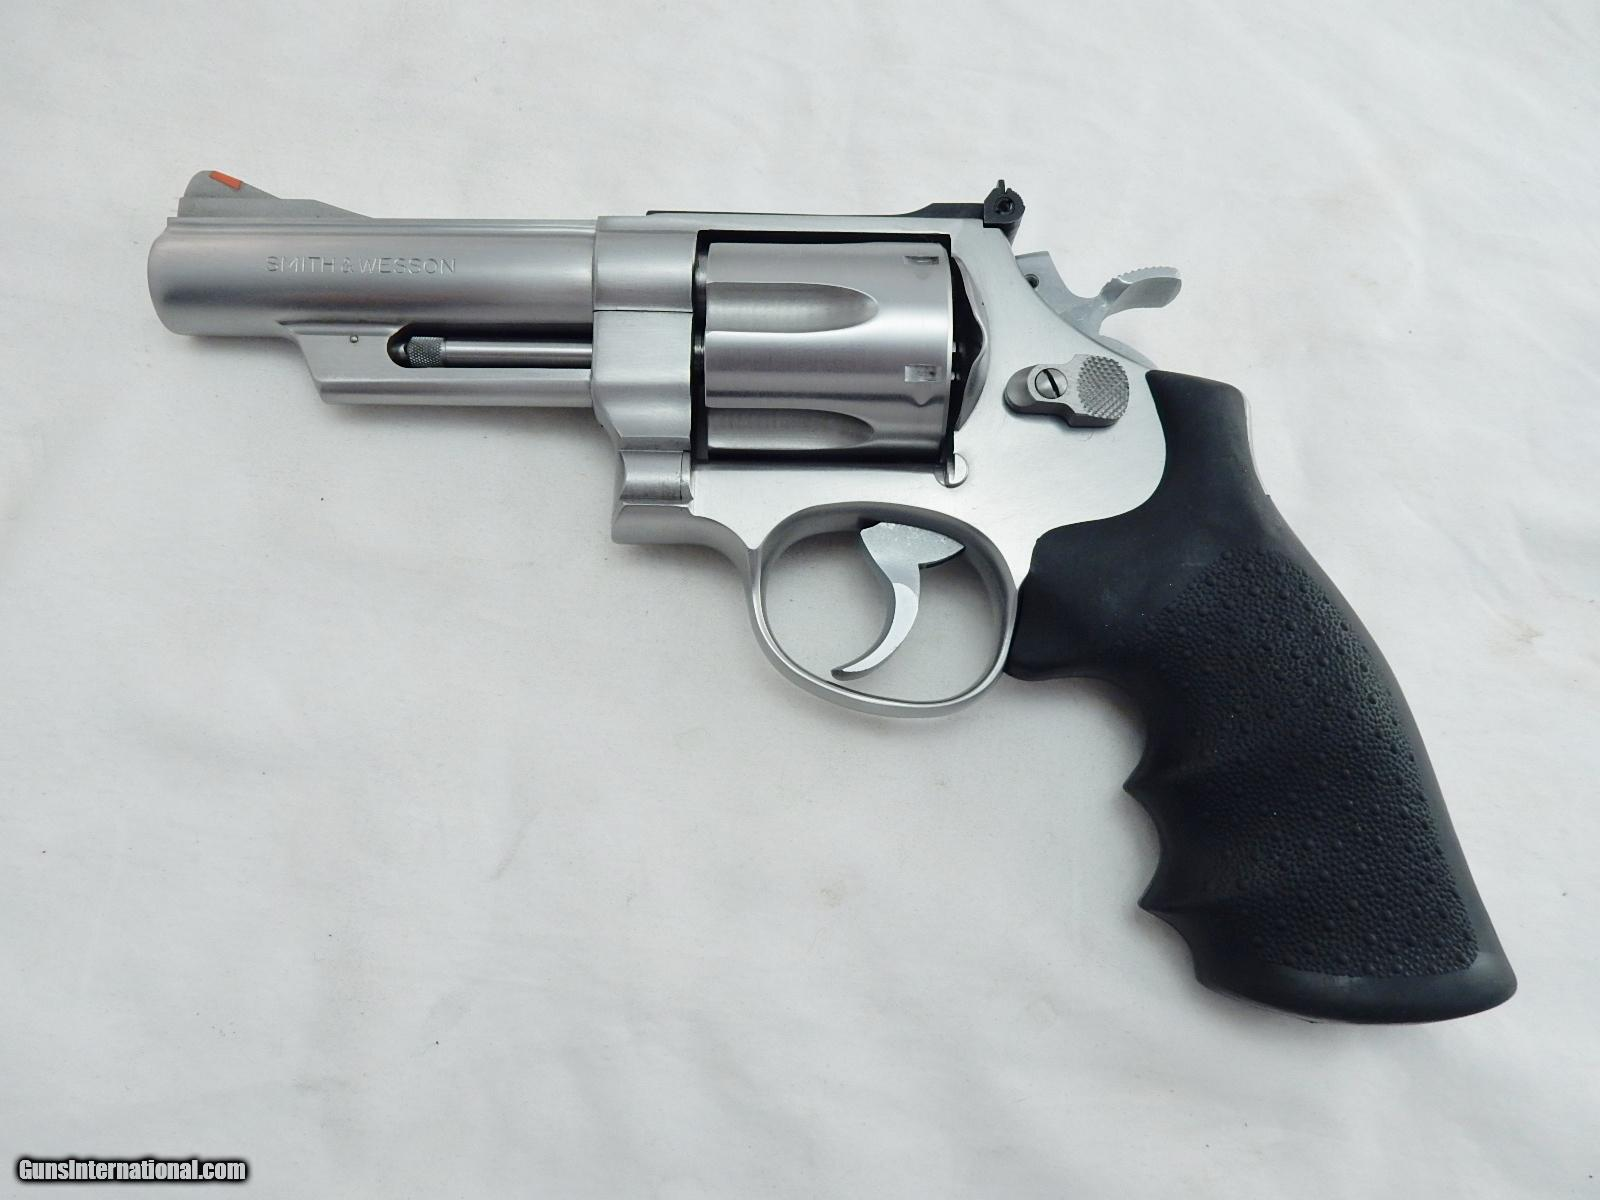 1985 Smith Wesson 629 4 Inch 44 Magnum - 1 of 8 ...